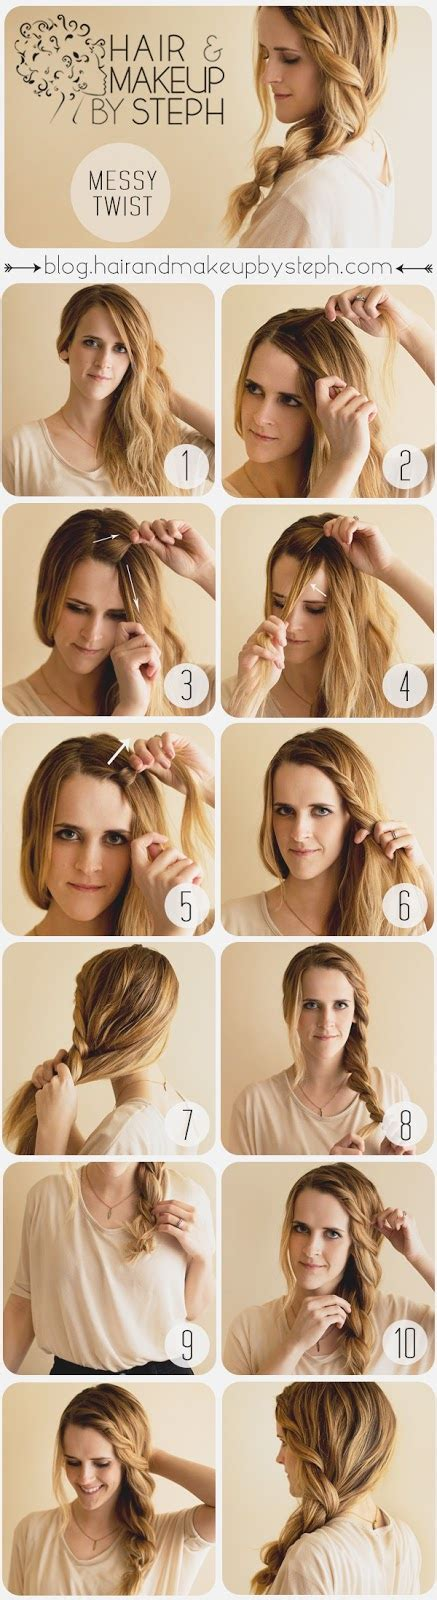 style ideas 20 cute and easy hairstyle ideas and tutorials style